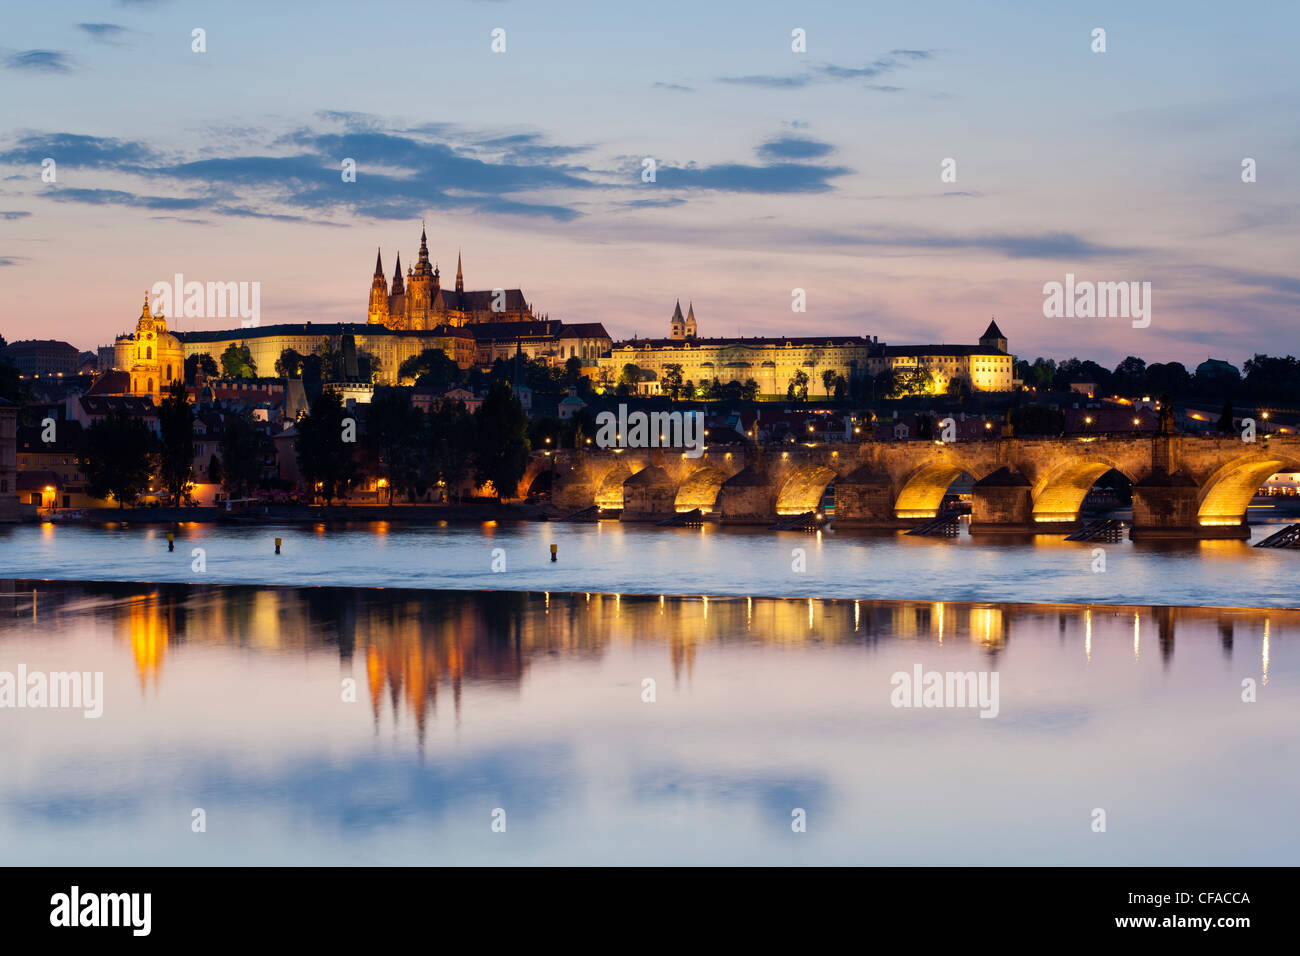 St. Vitus Cathedral, Charles Bridge and the Castle District illuminated at night, Prague, Czech Republic Stock Photo